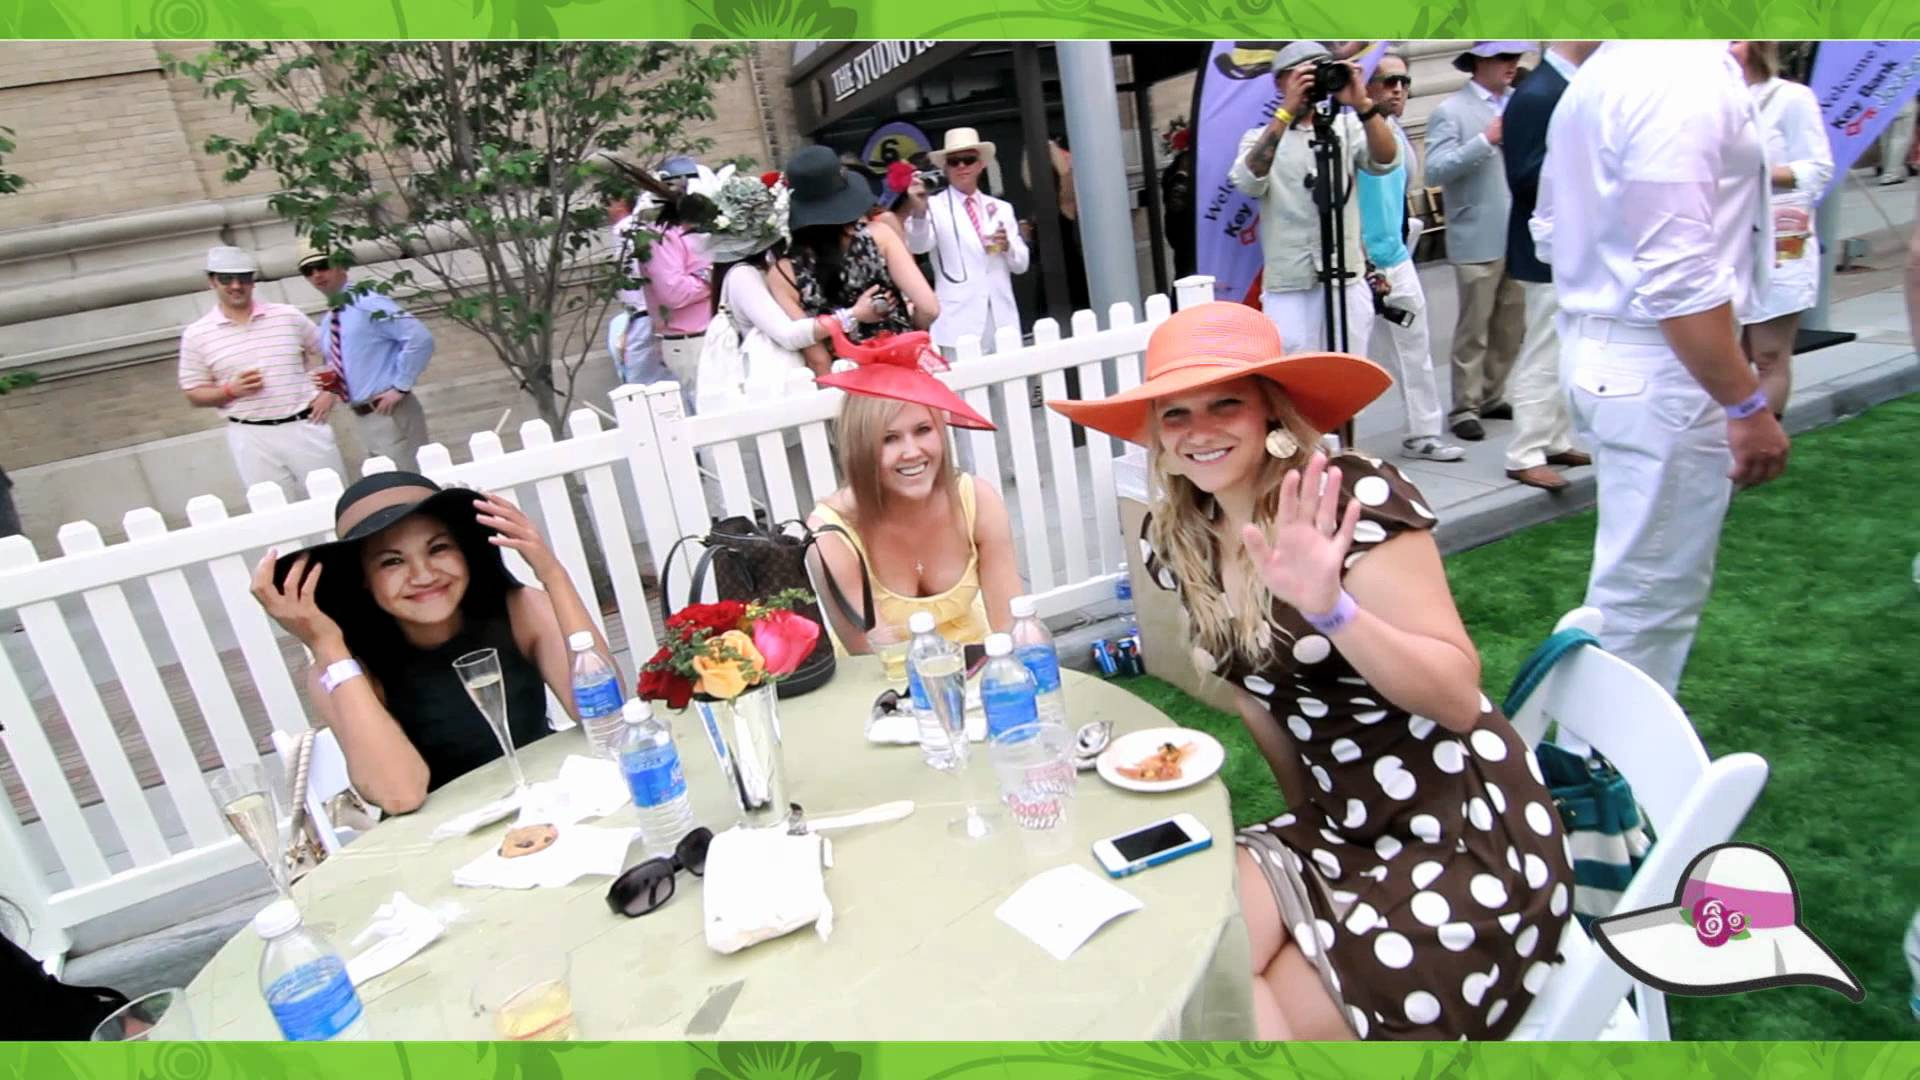 Denver Derby Party Prepares For Another Kentucky Derby Themed